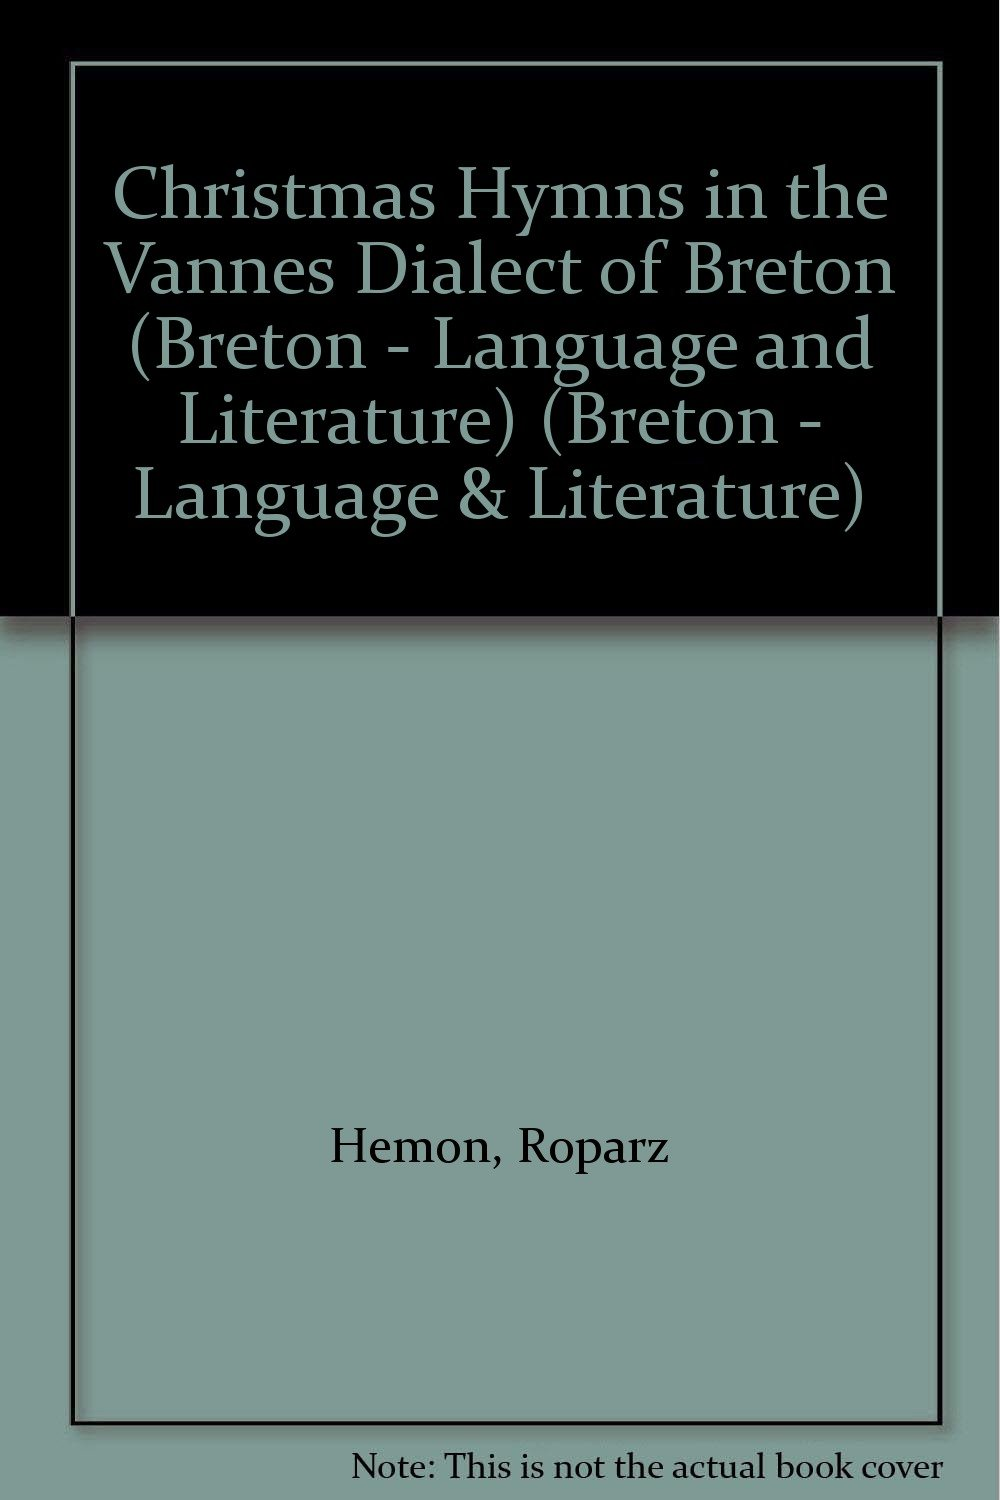 Christmas Hymns in the Vannes Dialect of Breton (Breton - language & literature)